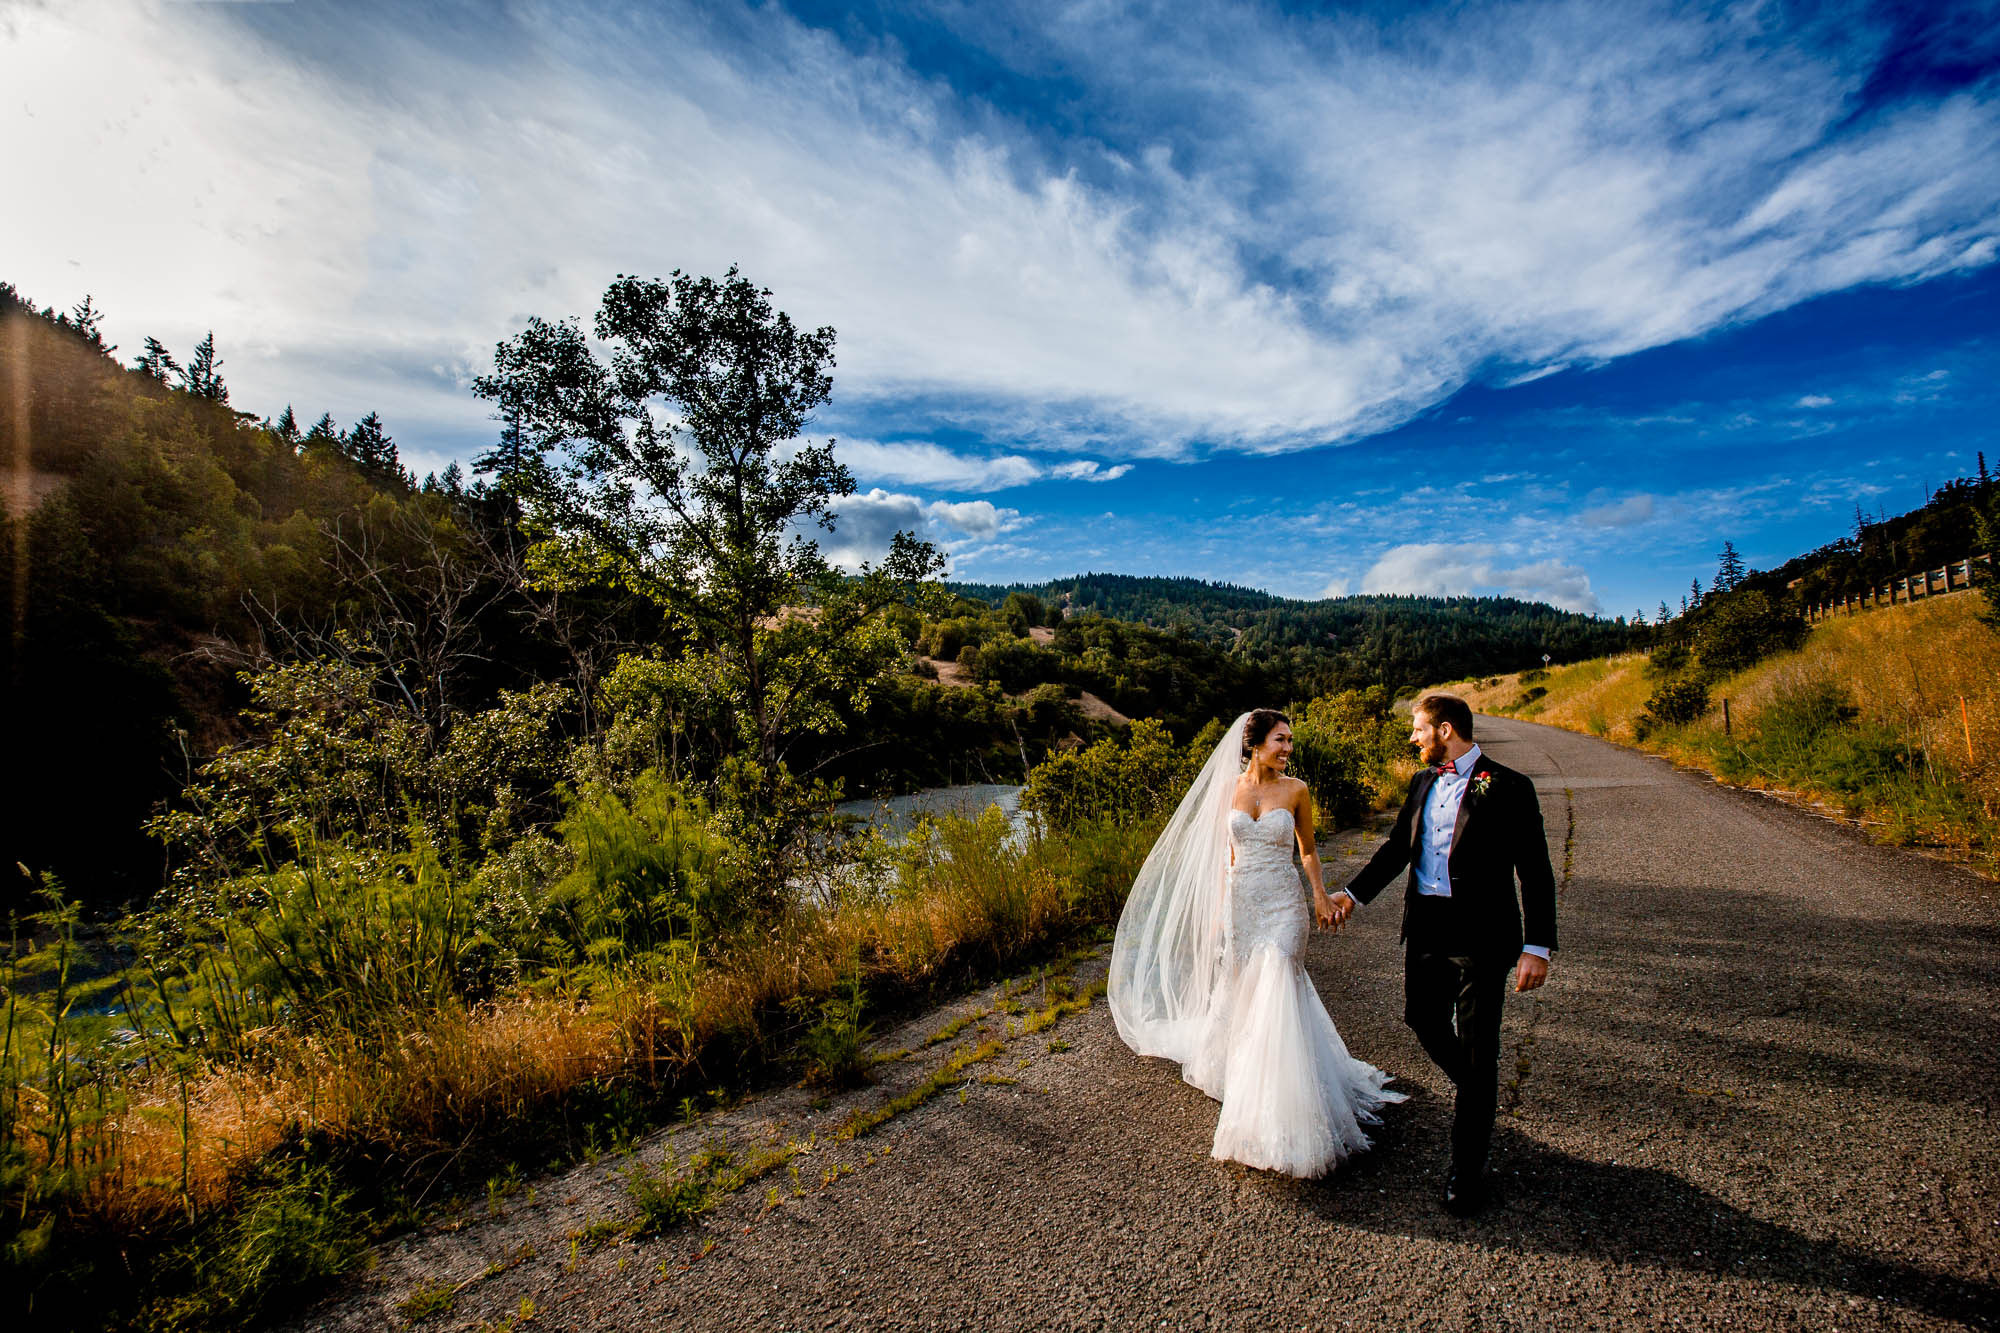 Couple walking river road photo by JOS Studios : Jos and Tree Woodsmith